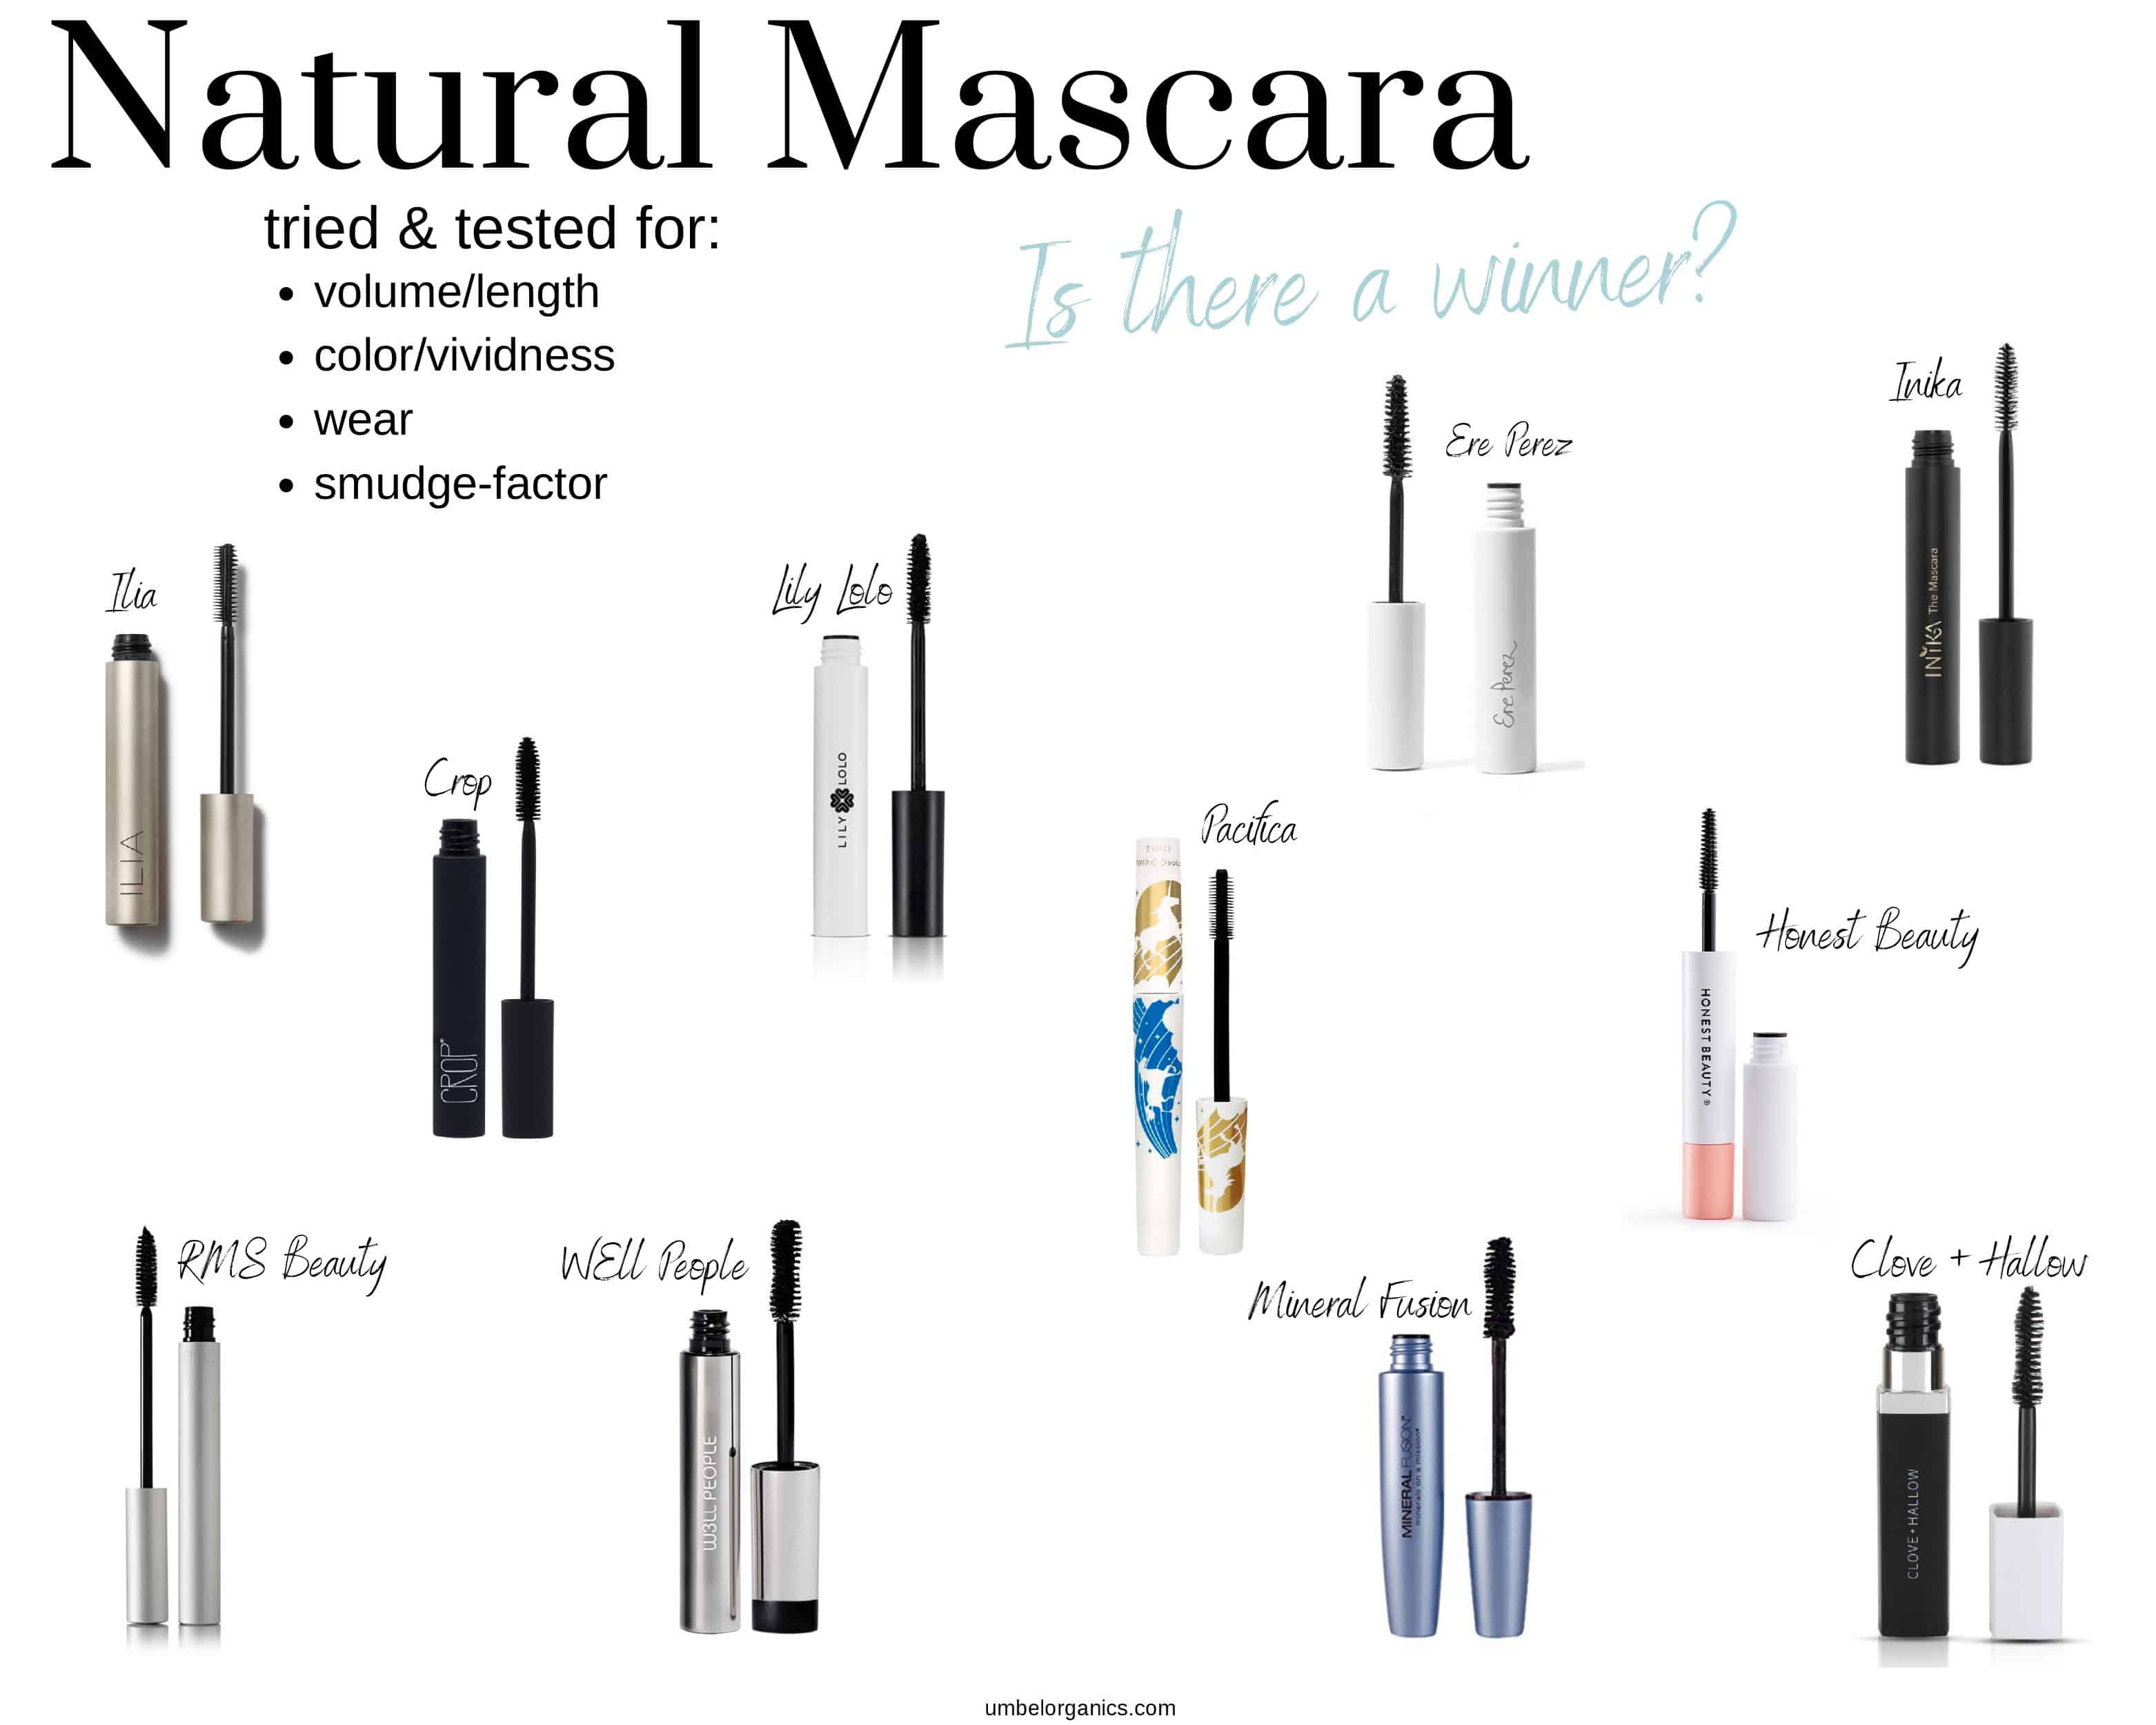 11 natural mascara brands- which is best?